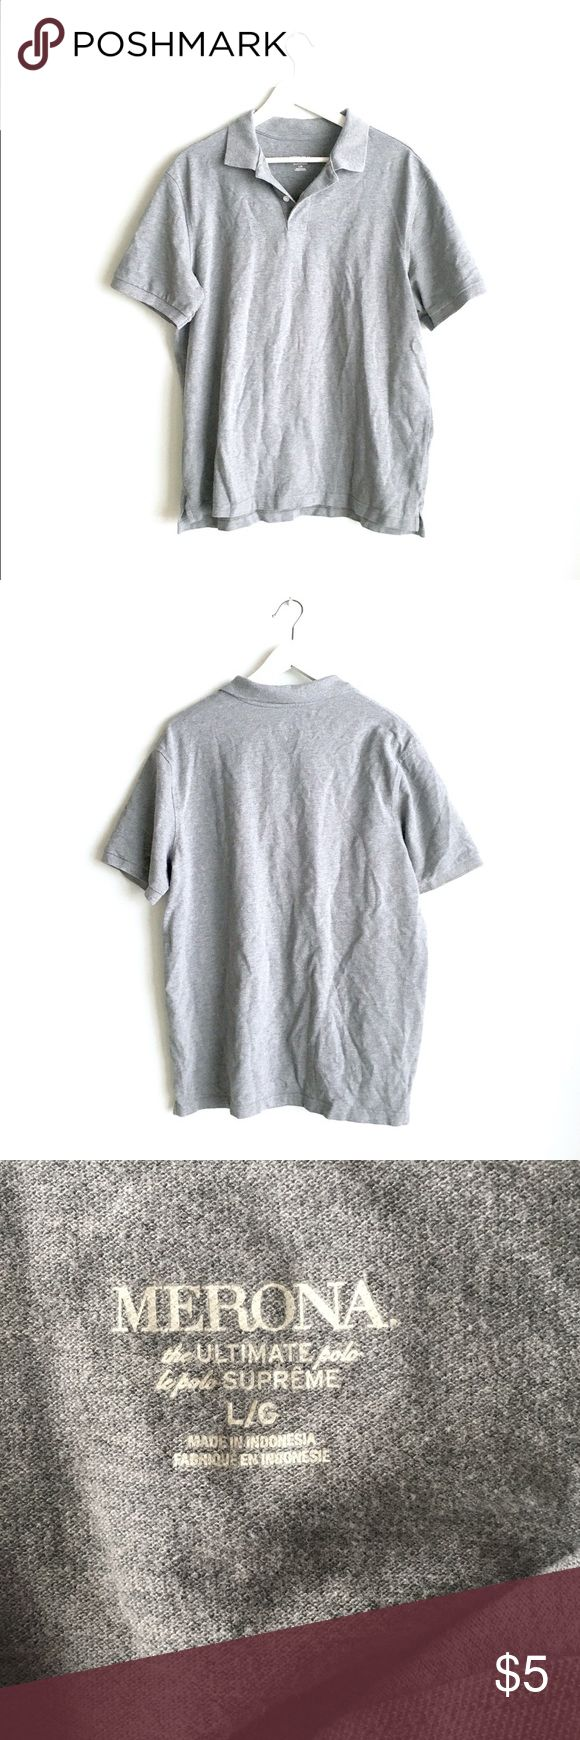 🐋 Men's grey polo shirt Merona Men's grey polo shirt. Thick, comfortable cotton. Only worn once or twice. Fits size large in Men's. Merona Shirts Polos